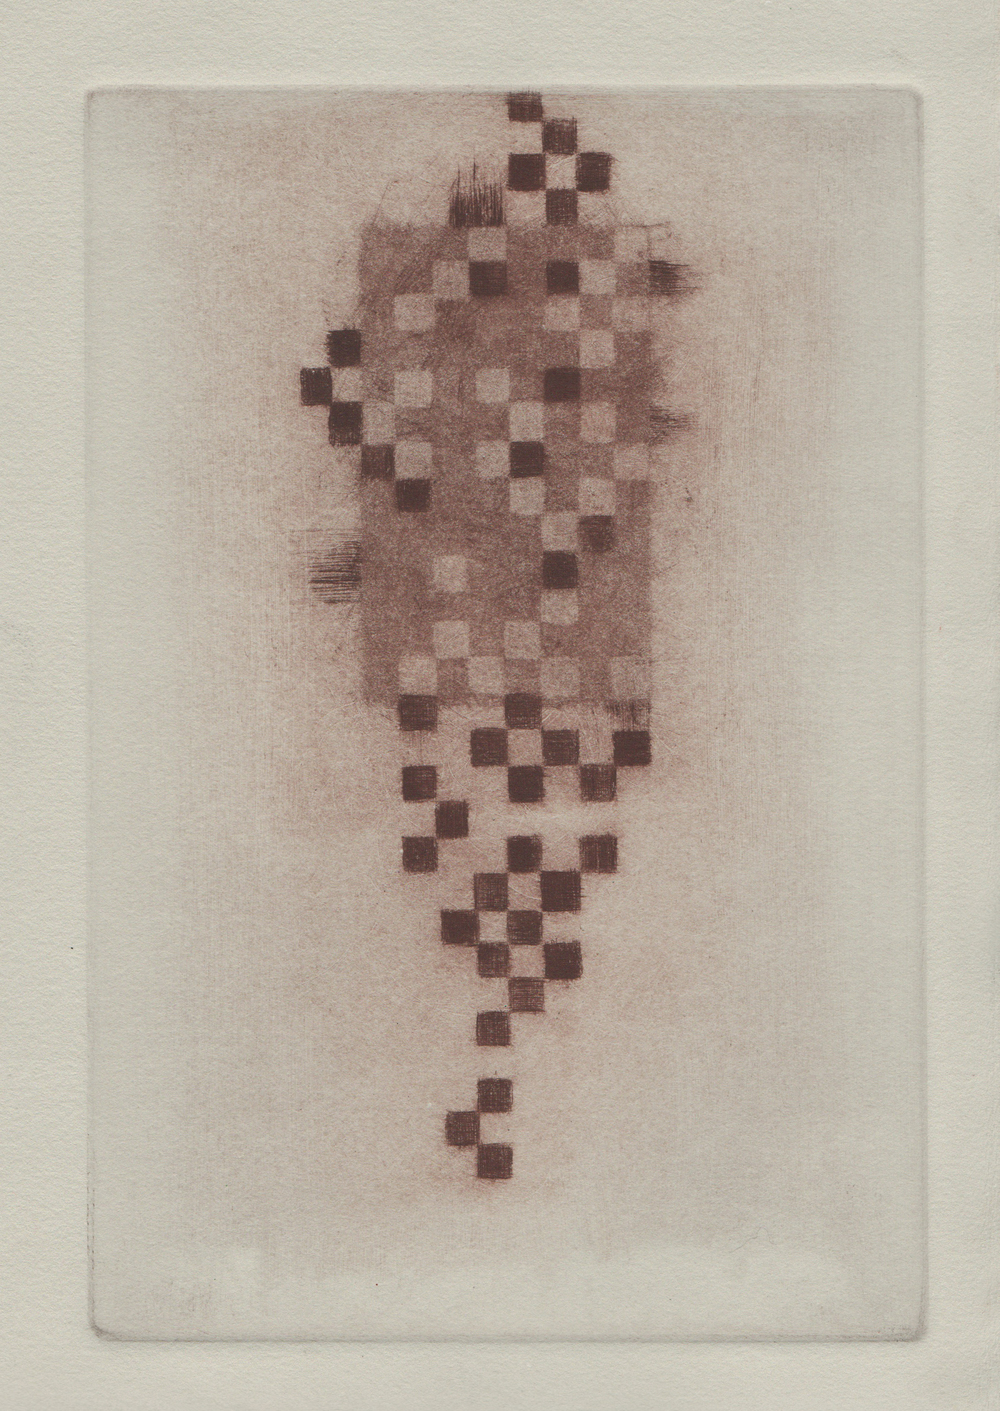 Dead Pixels, 2014, mezzotint and drypoint, 14x11in